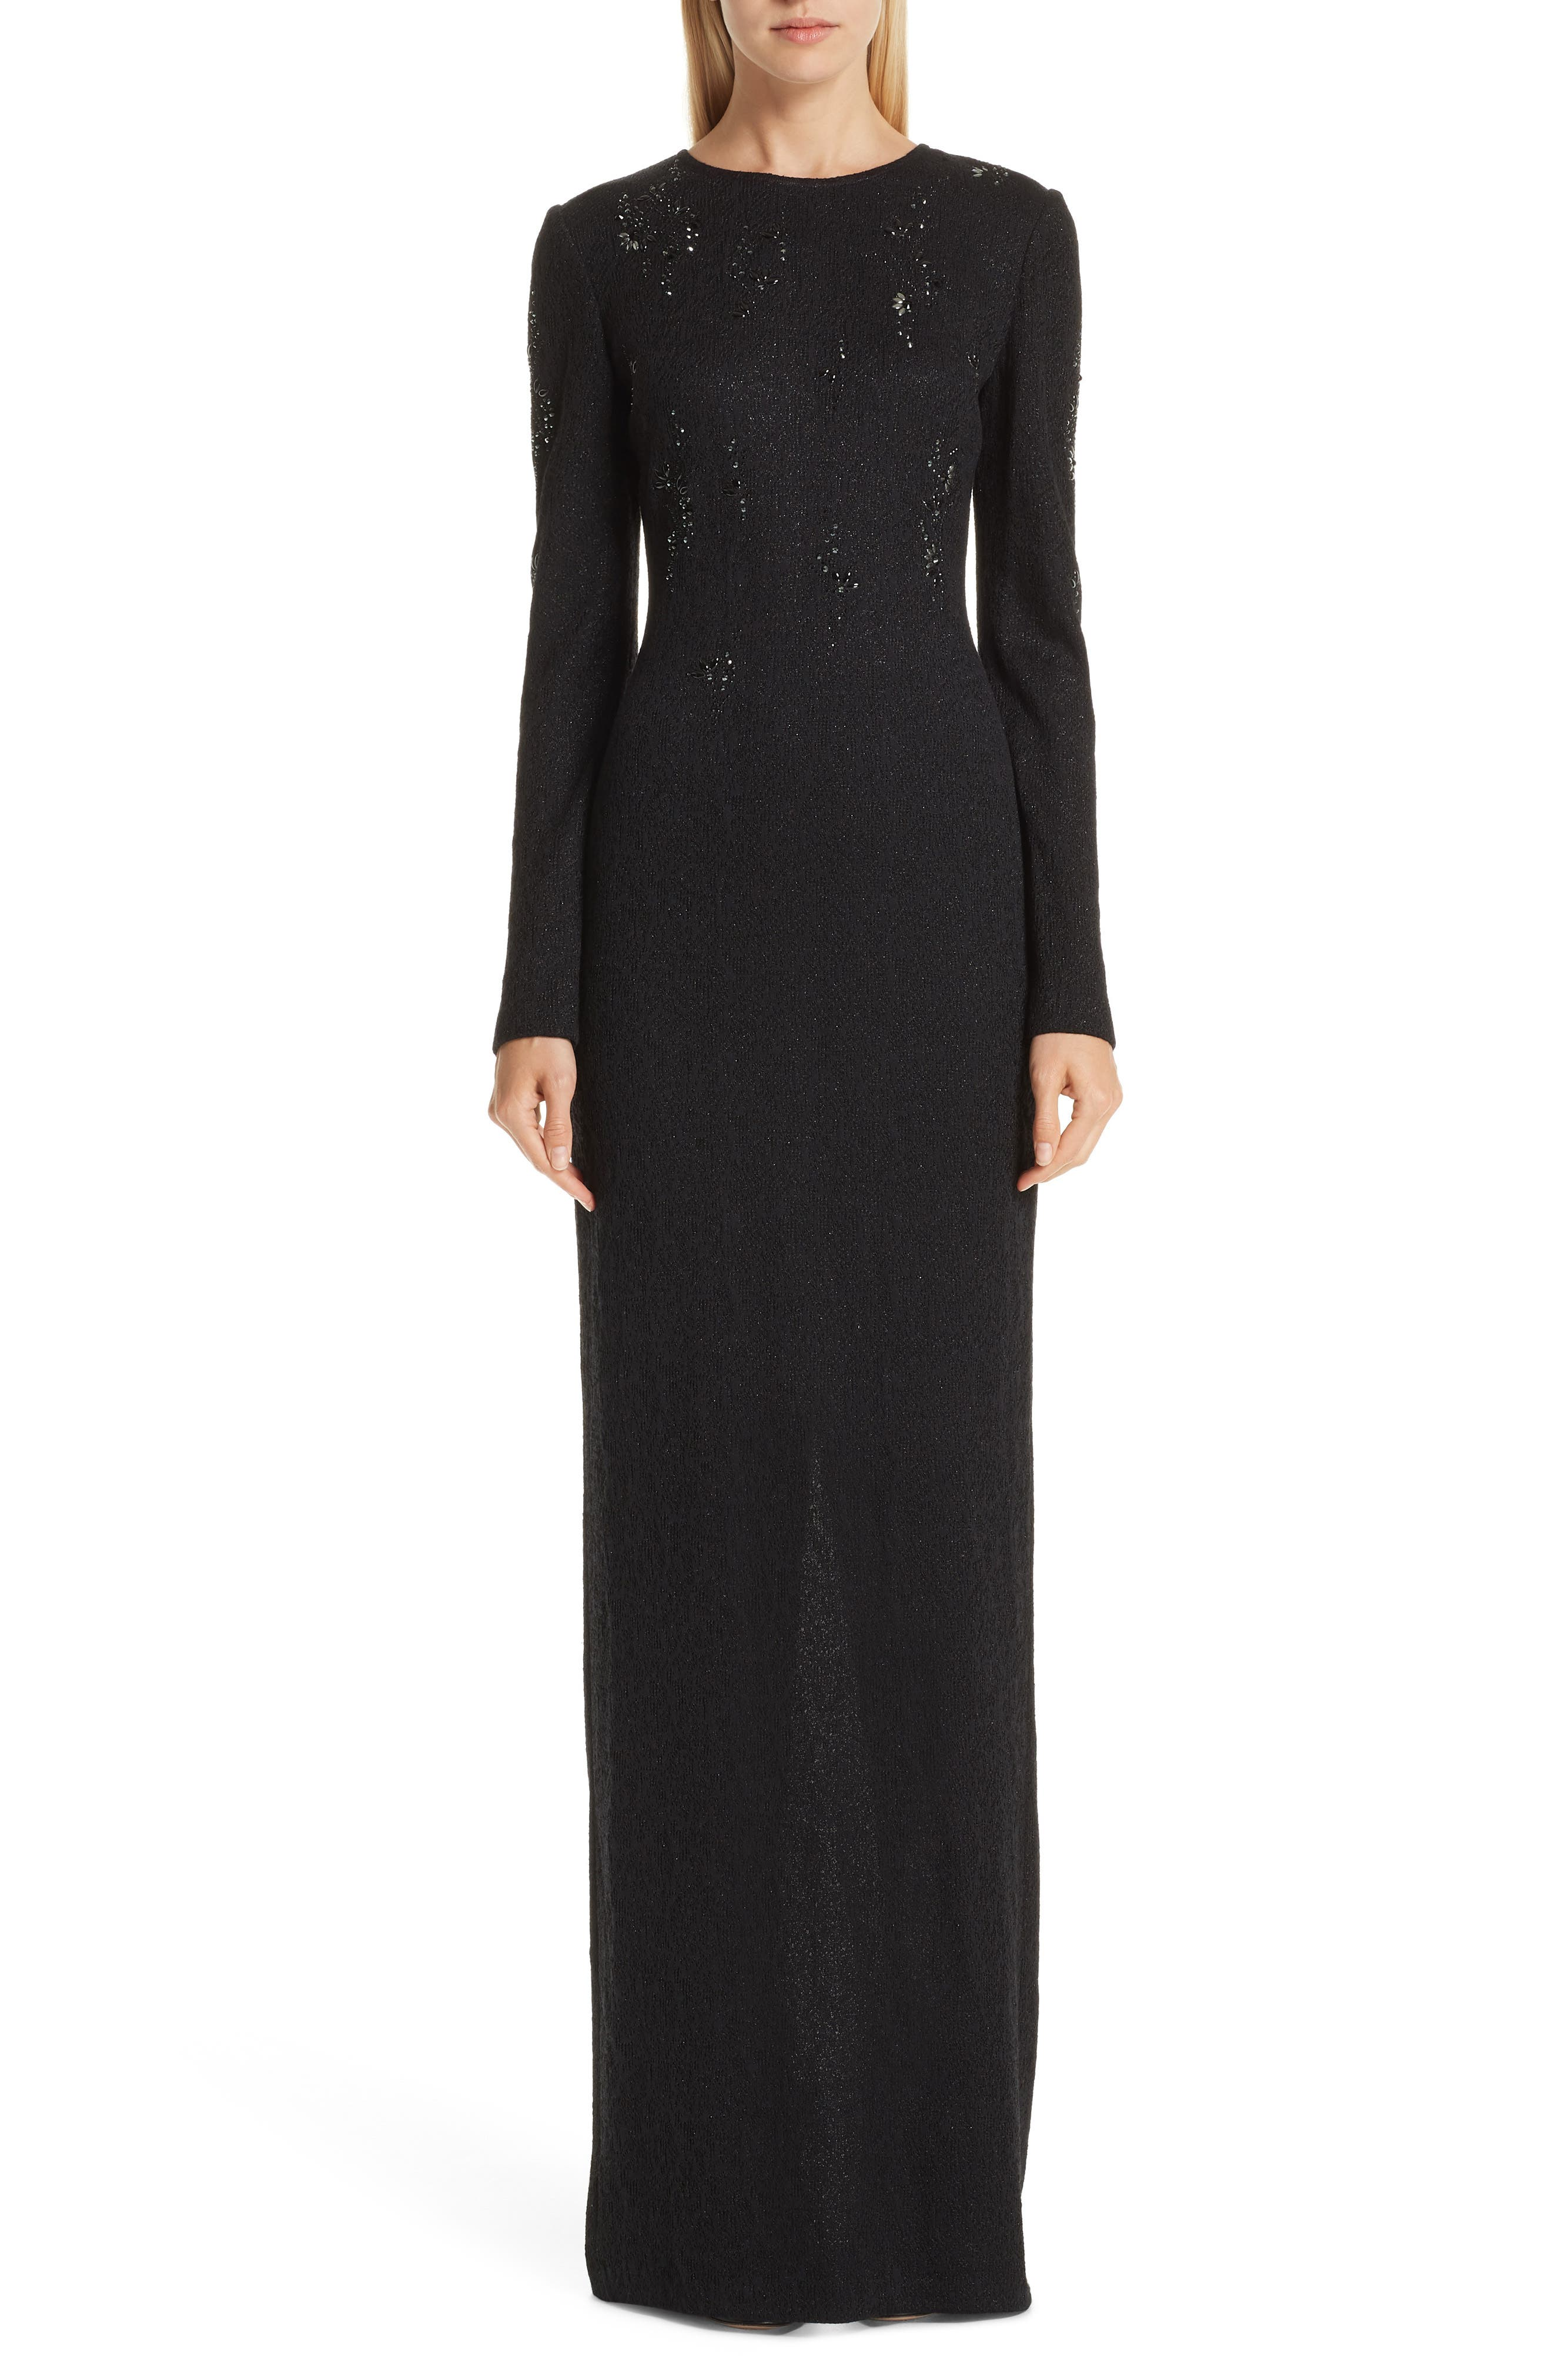 ST. JOHN COLLECTION Lace Overlay Jacquard Knit Gown, Main, color, CAVIAR